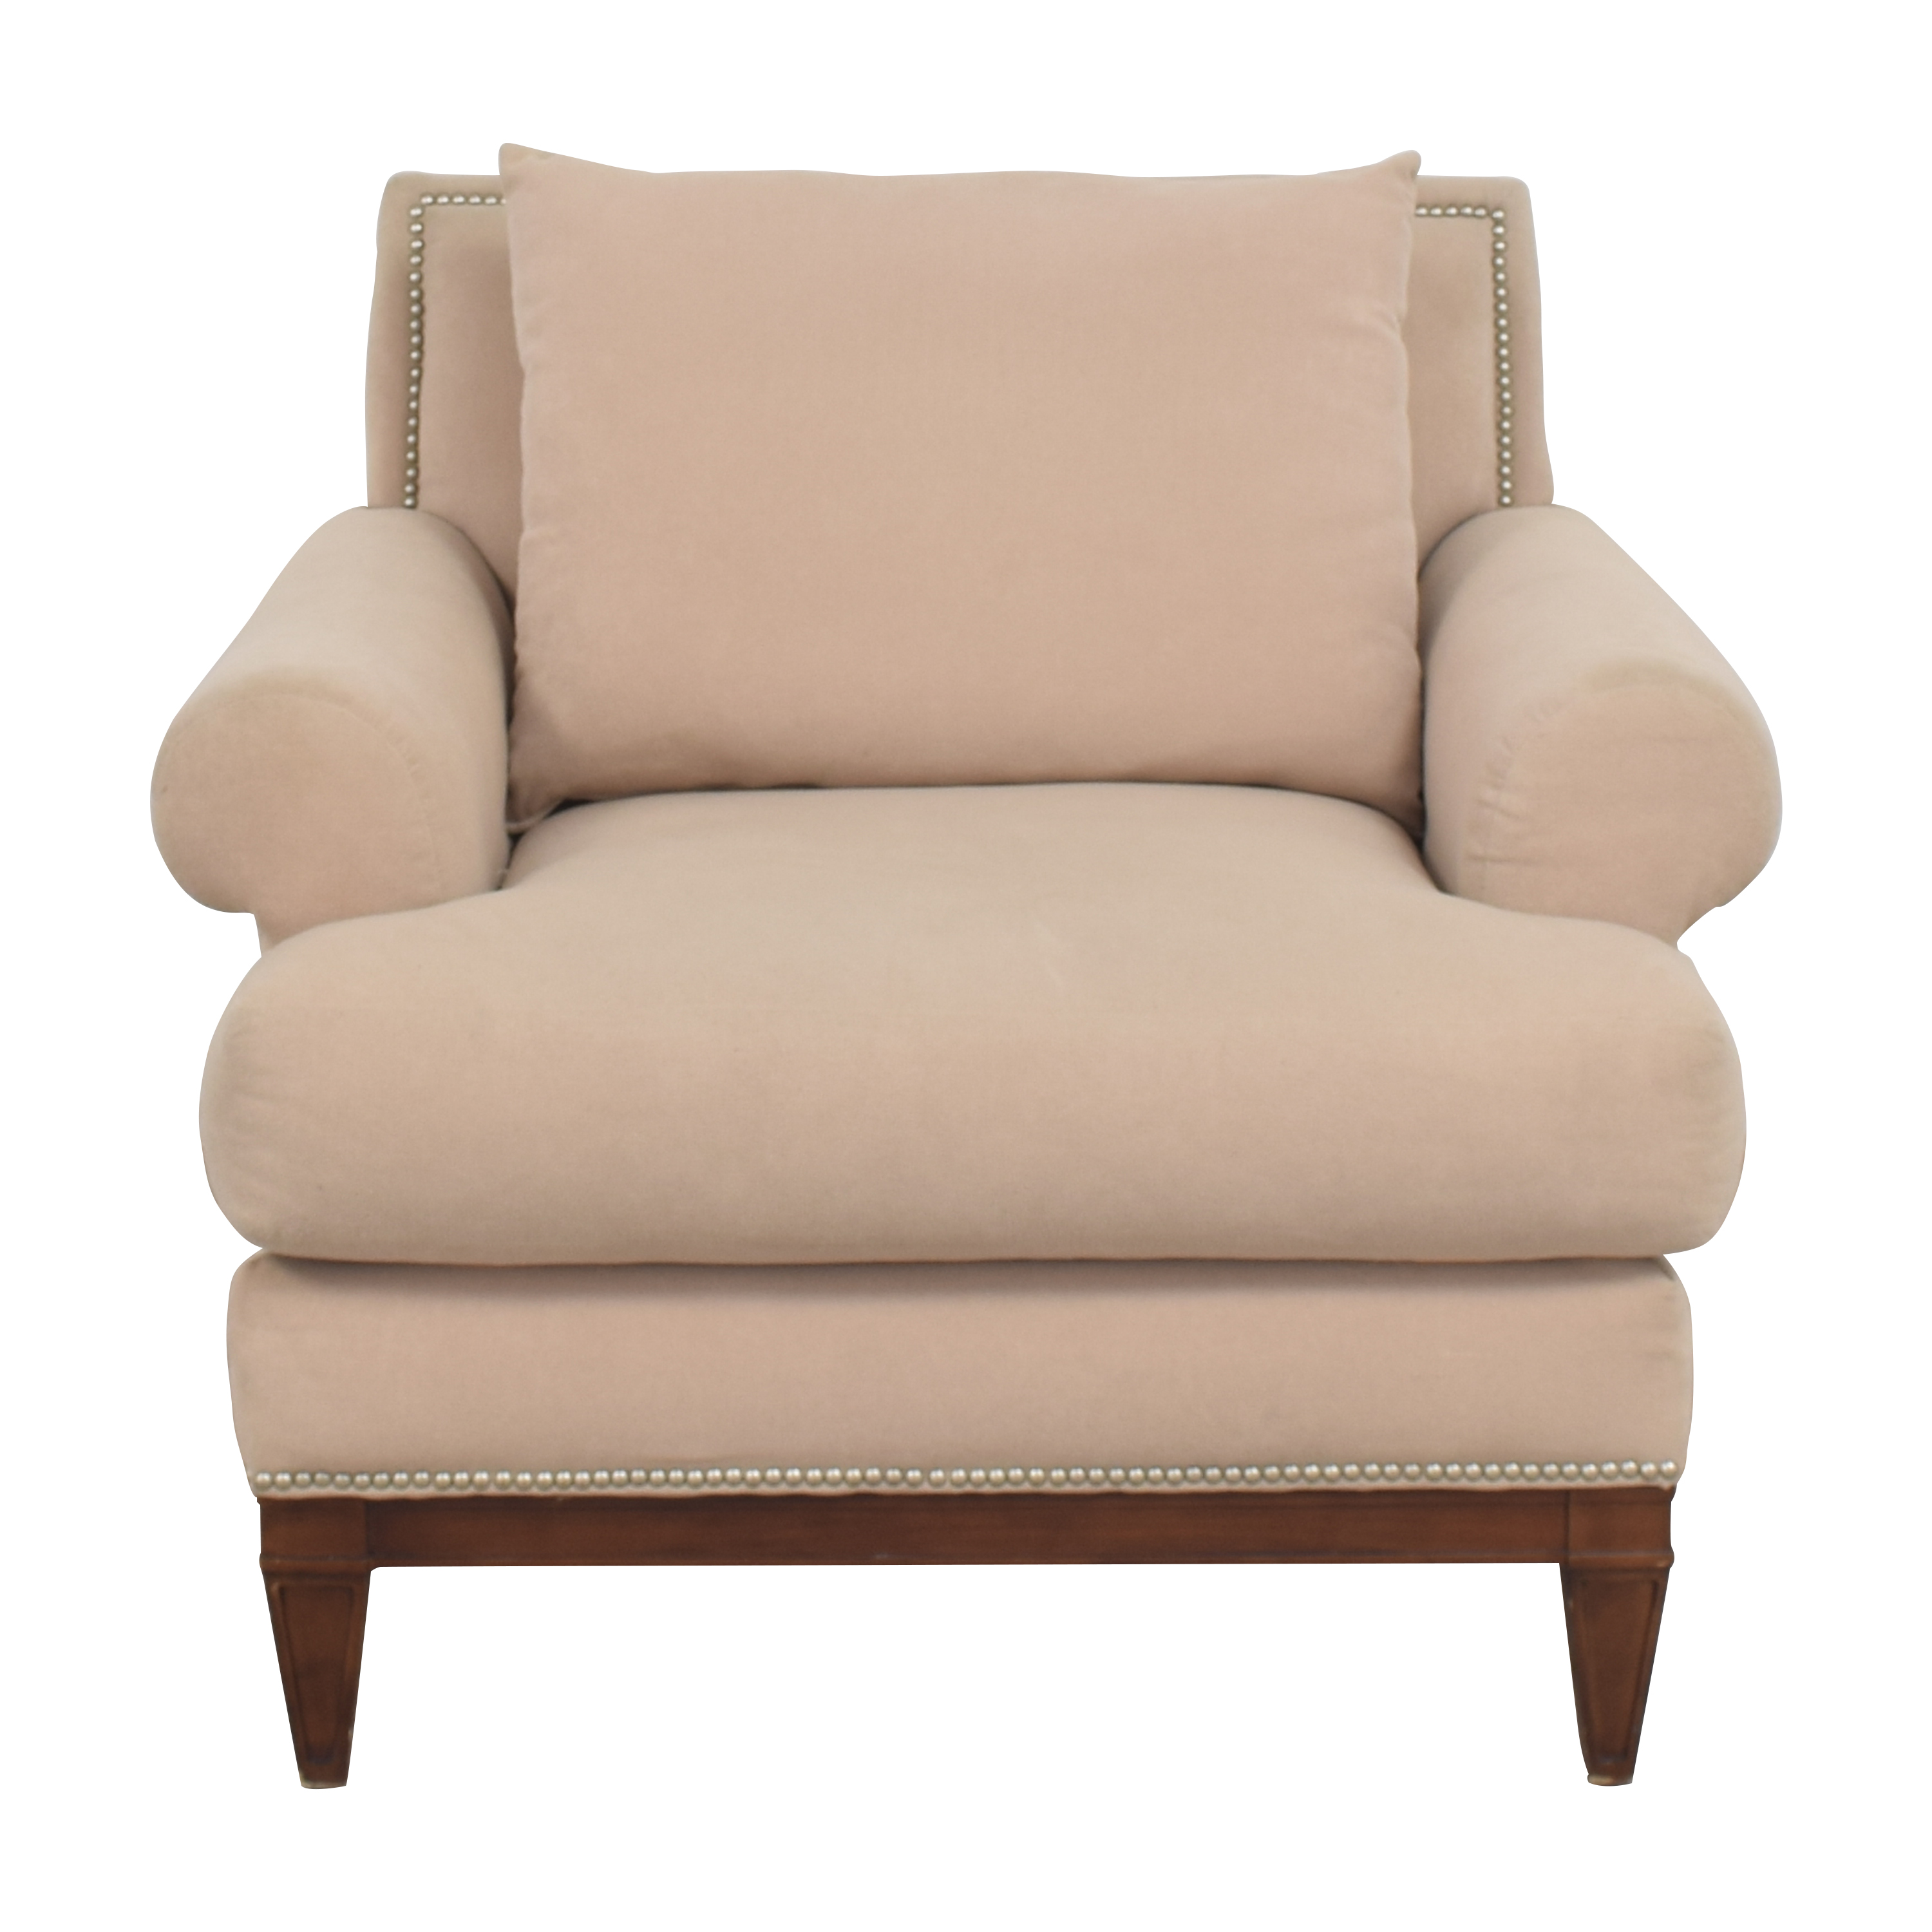 shop Bloomingdale's Roll Arm Accent Chair Bloomingdale's Accent Chairs